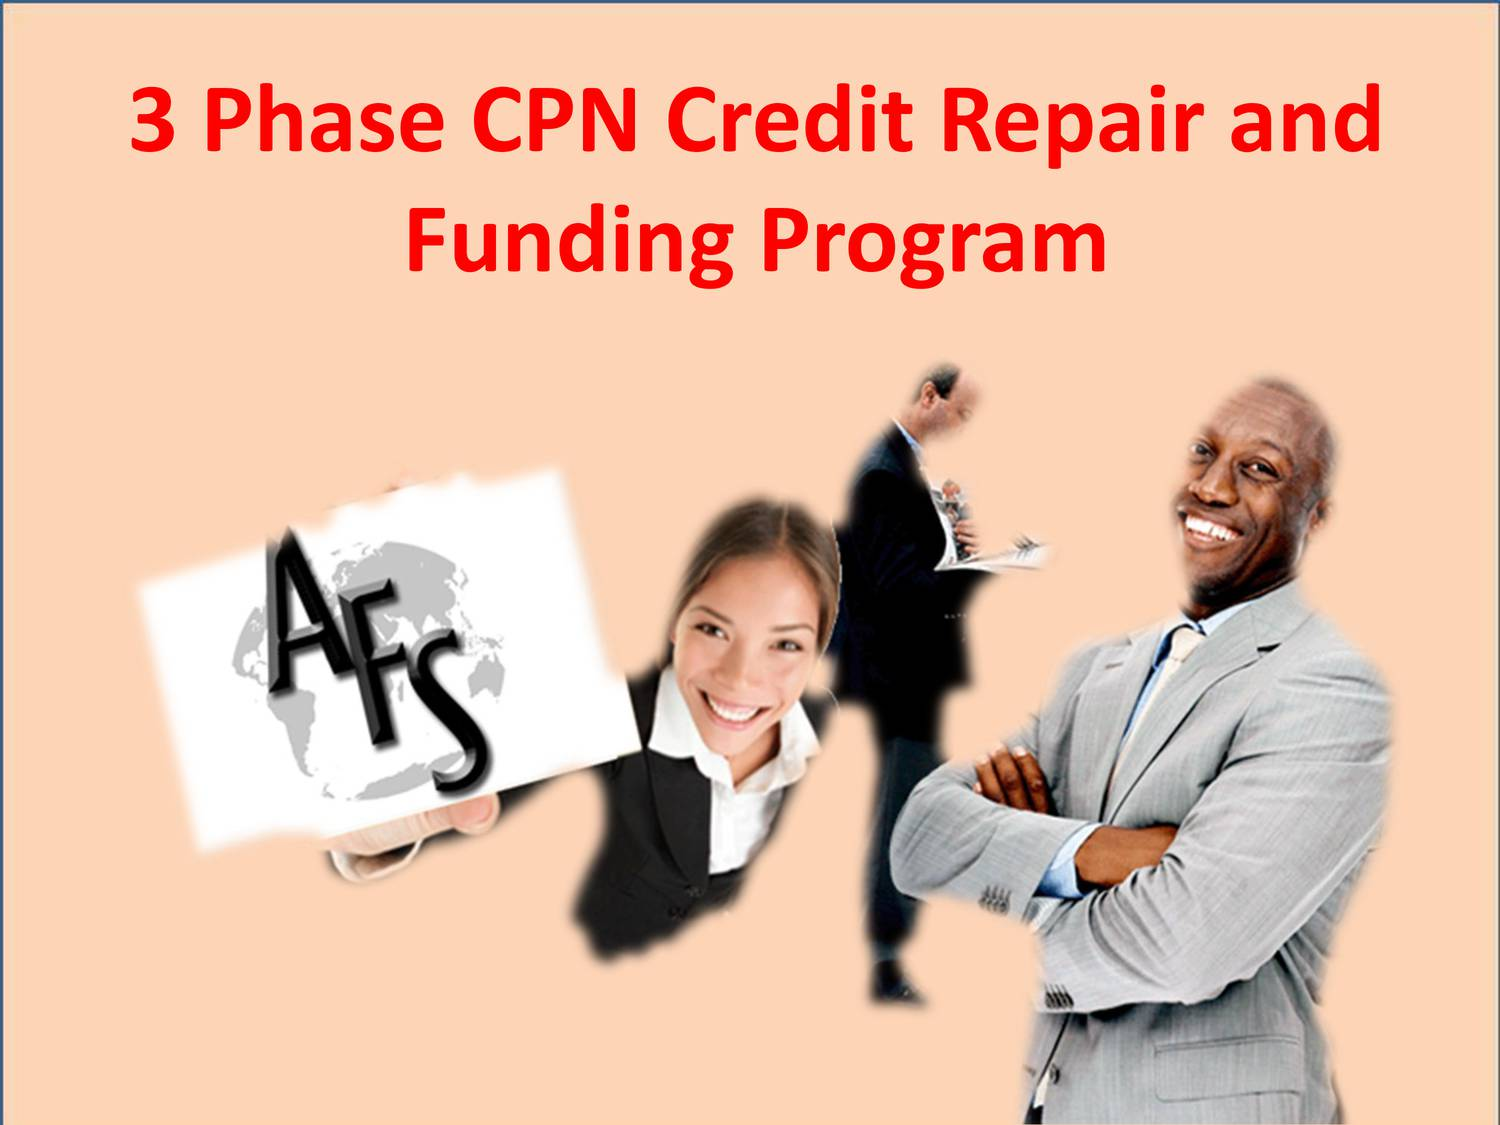 3 Phase CPN Credit Repair and Funding Program pptx | DocDroid